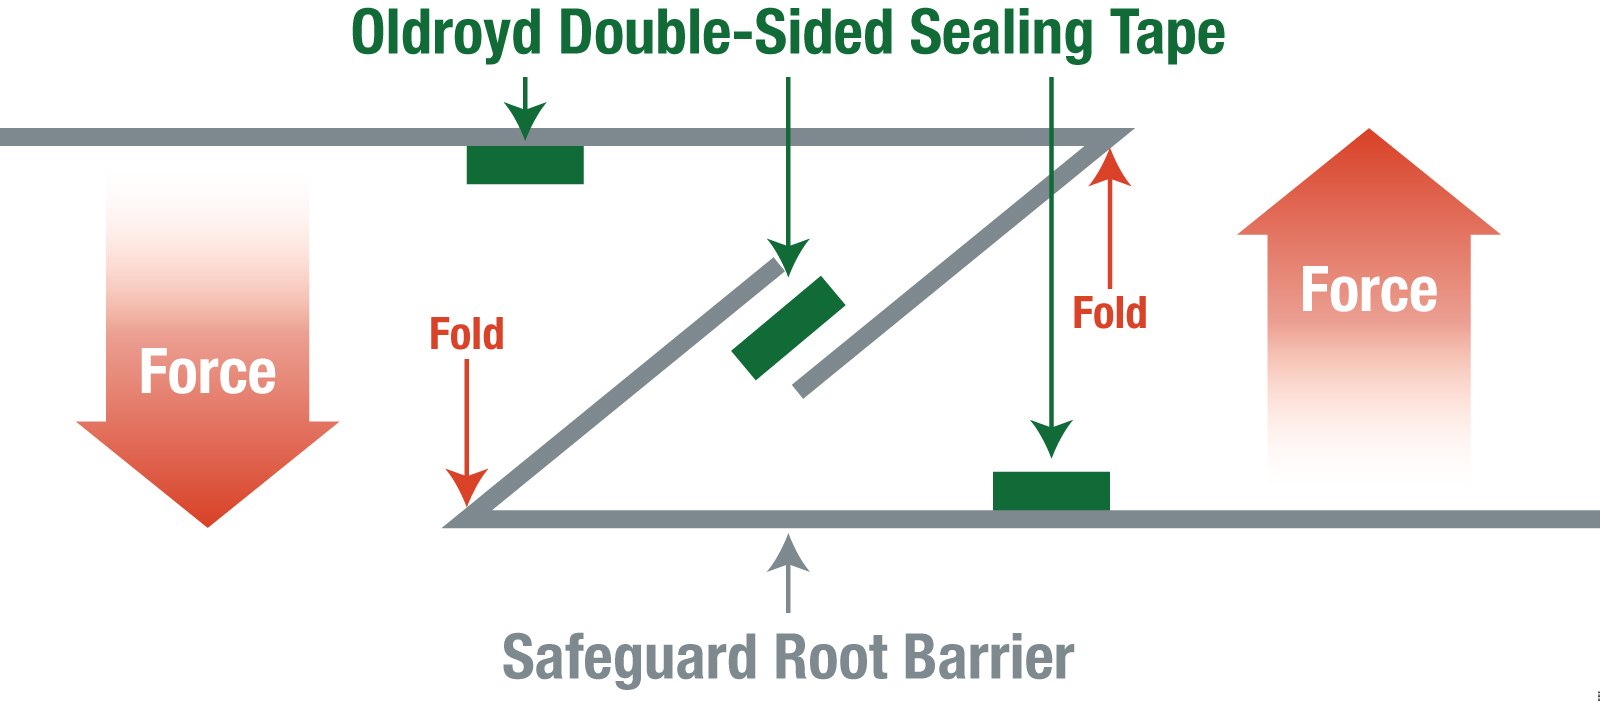 Safeguard Root Barrier Root Barrier For Constructing